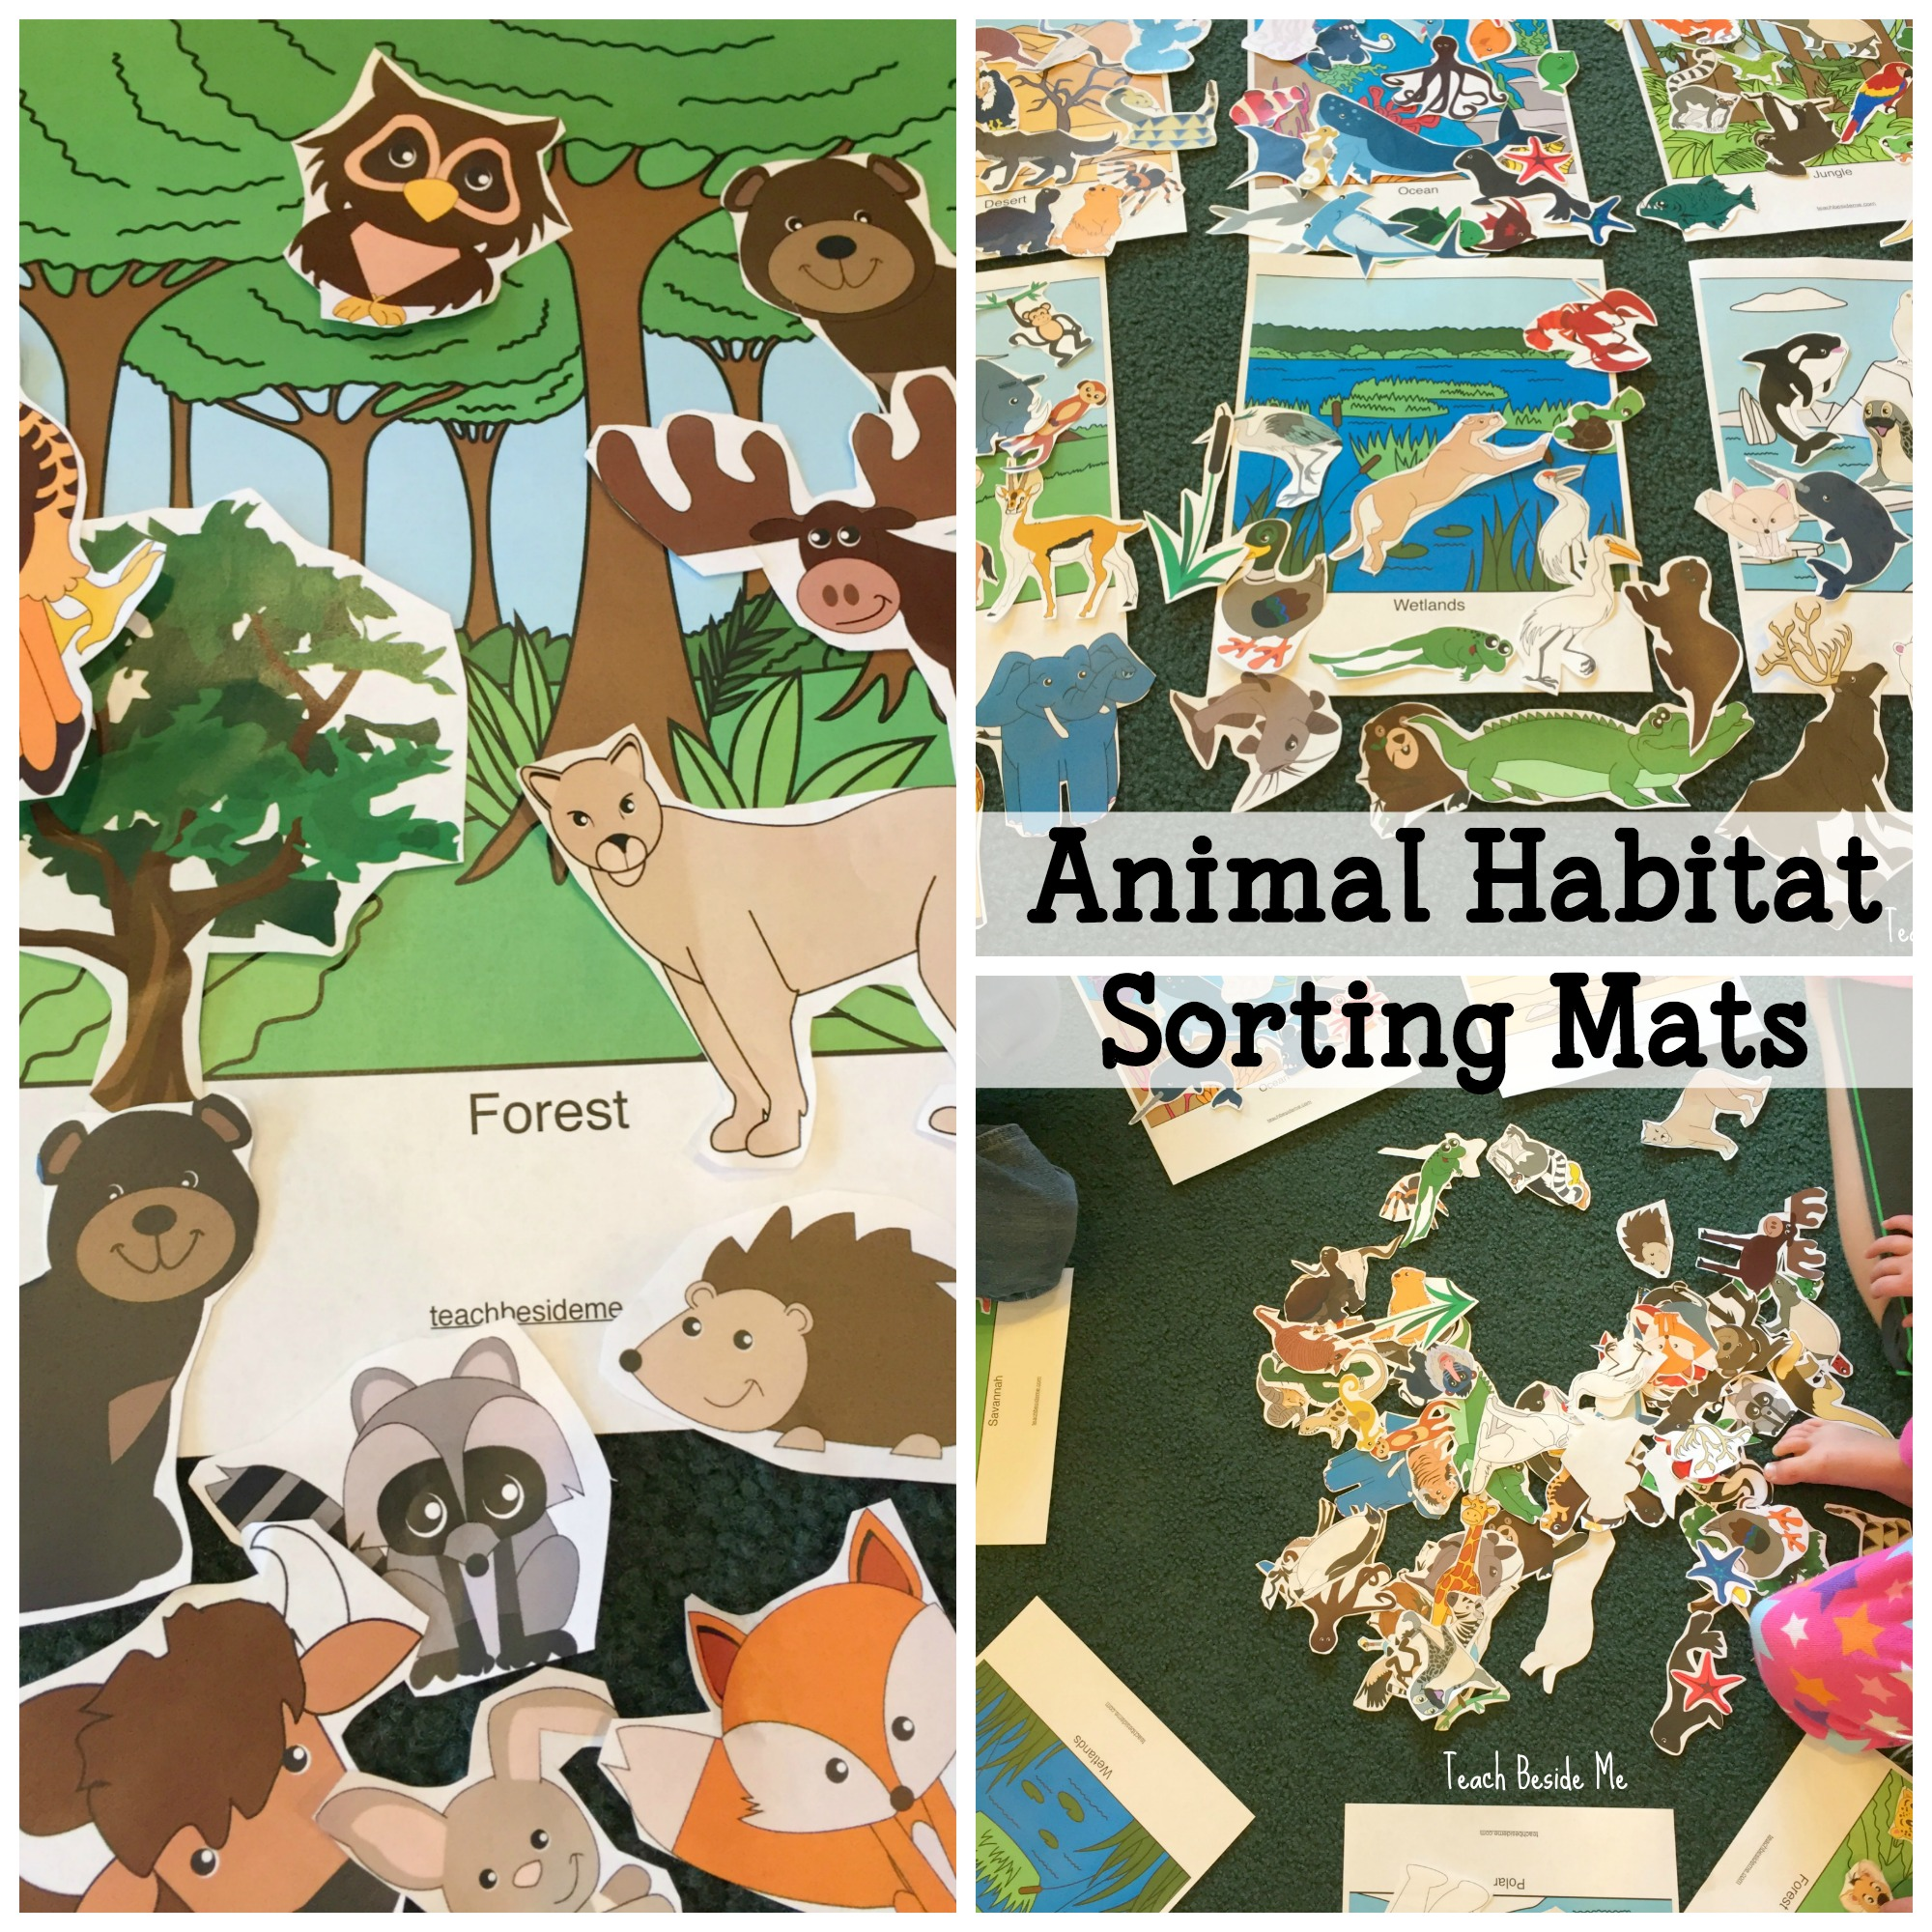 Aquarium Trip & Animal Habitats Sorting Mats